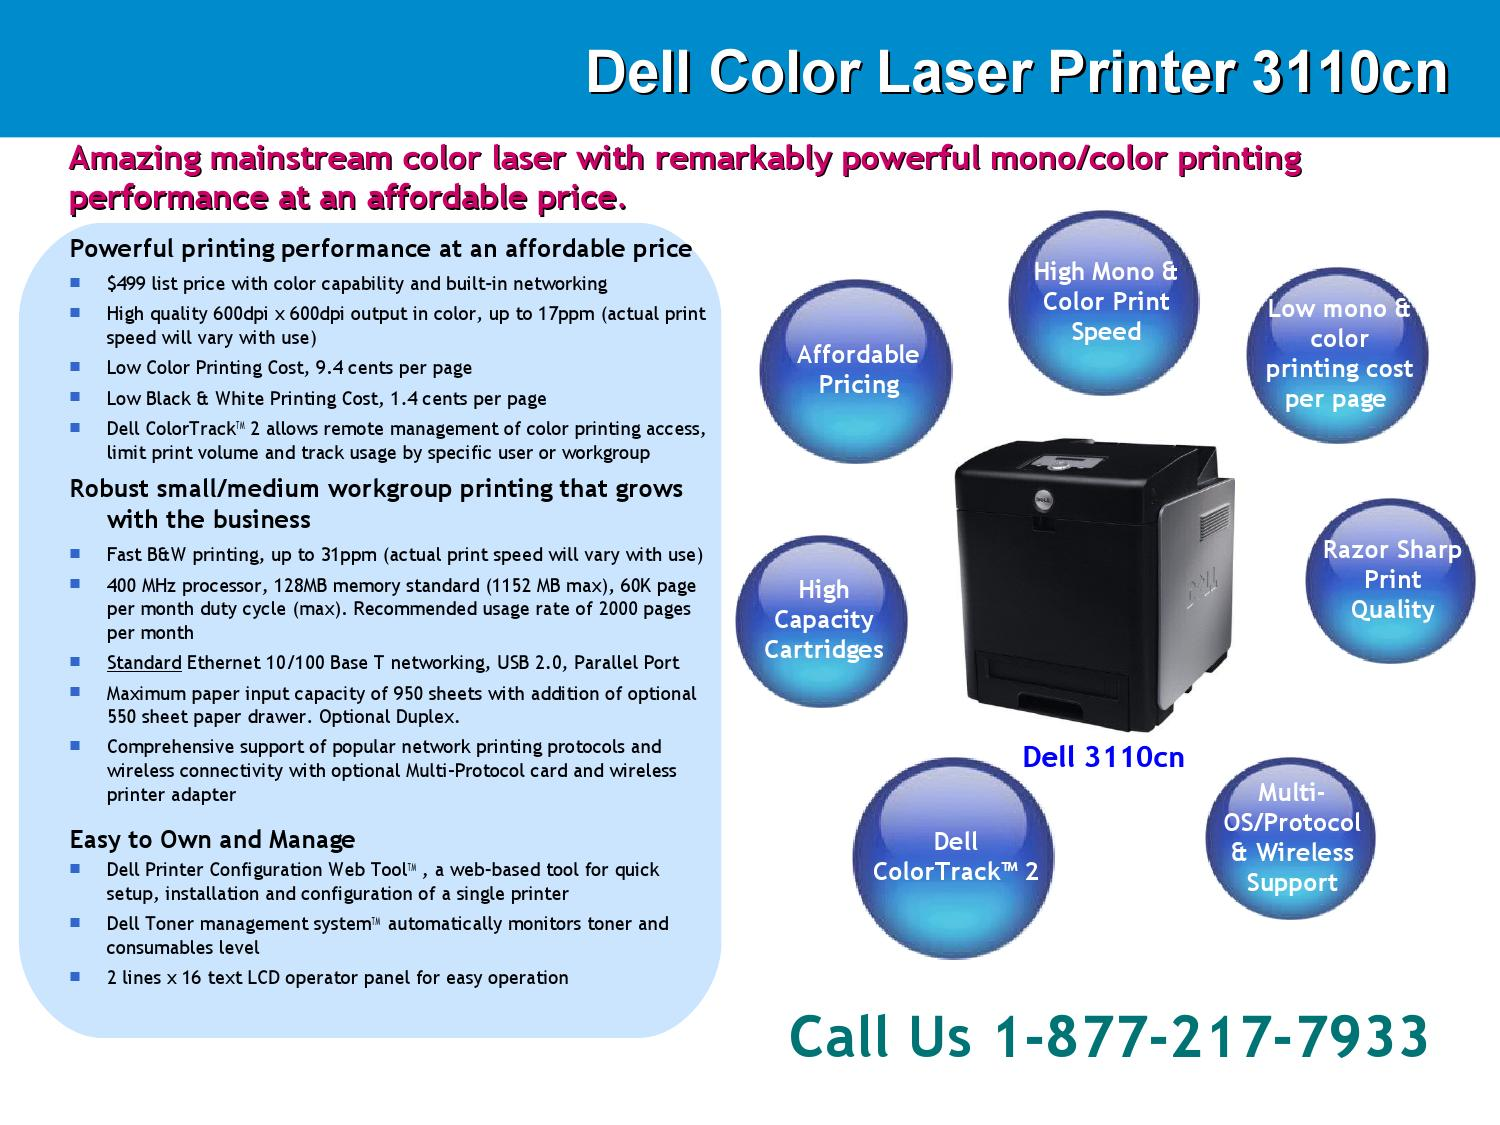 Dell color laser printer 3110cn support phone number for Fedex kinkos color printing cost per page